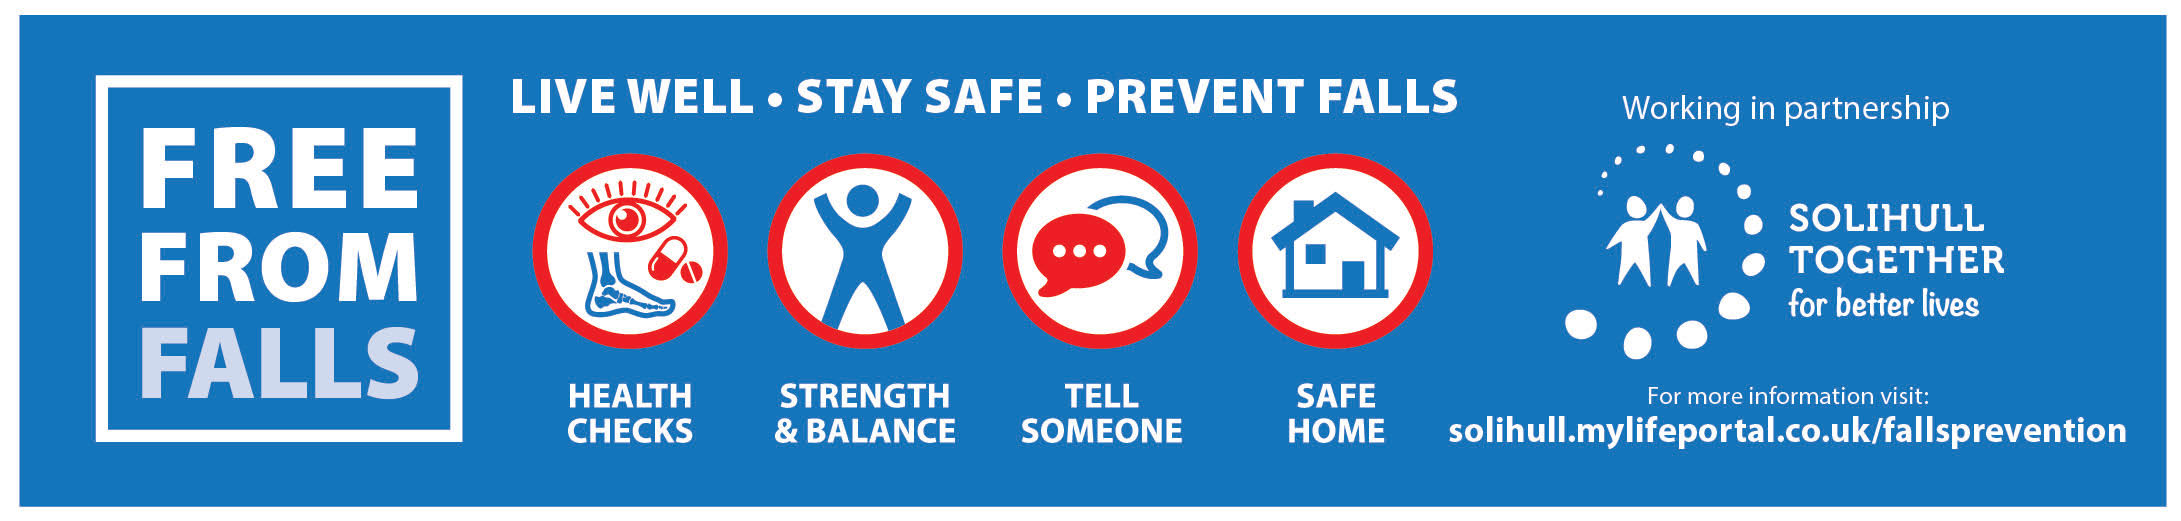 Free From Falls - Live Well, Stay Safe, Prevent Falls. Health Checks. Strength and Balance. Tell Someone. Safe Home. Working in Partnership with Solihull Together for better lives. For more information visit solihull.mylifeportal.co.uk/fallsprevention